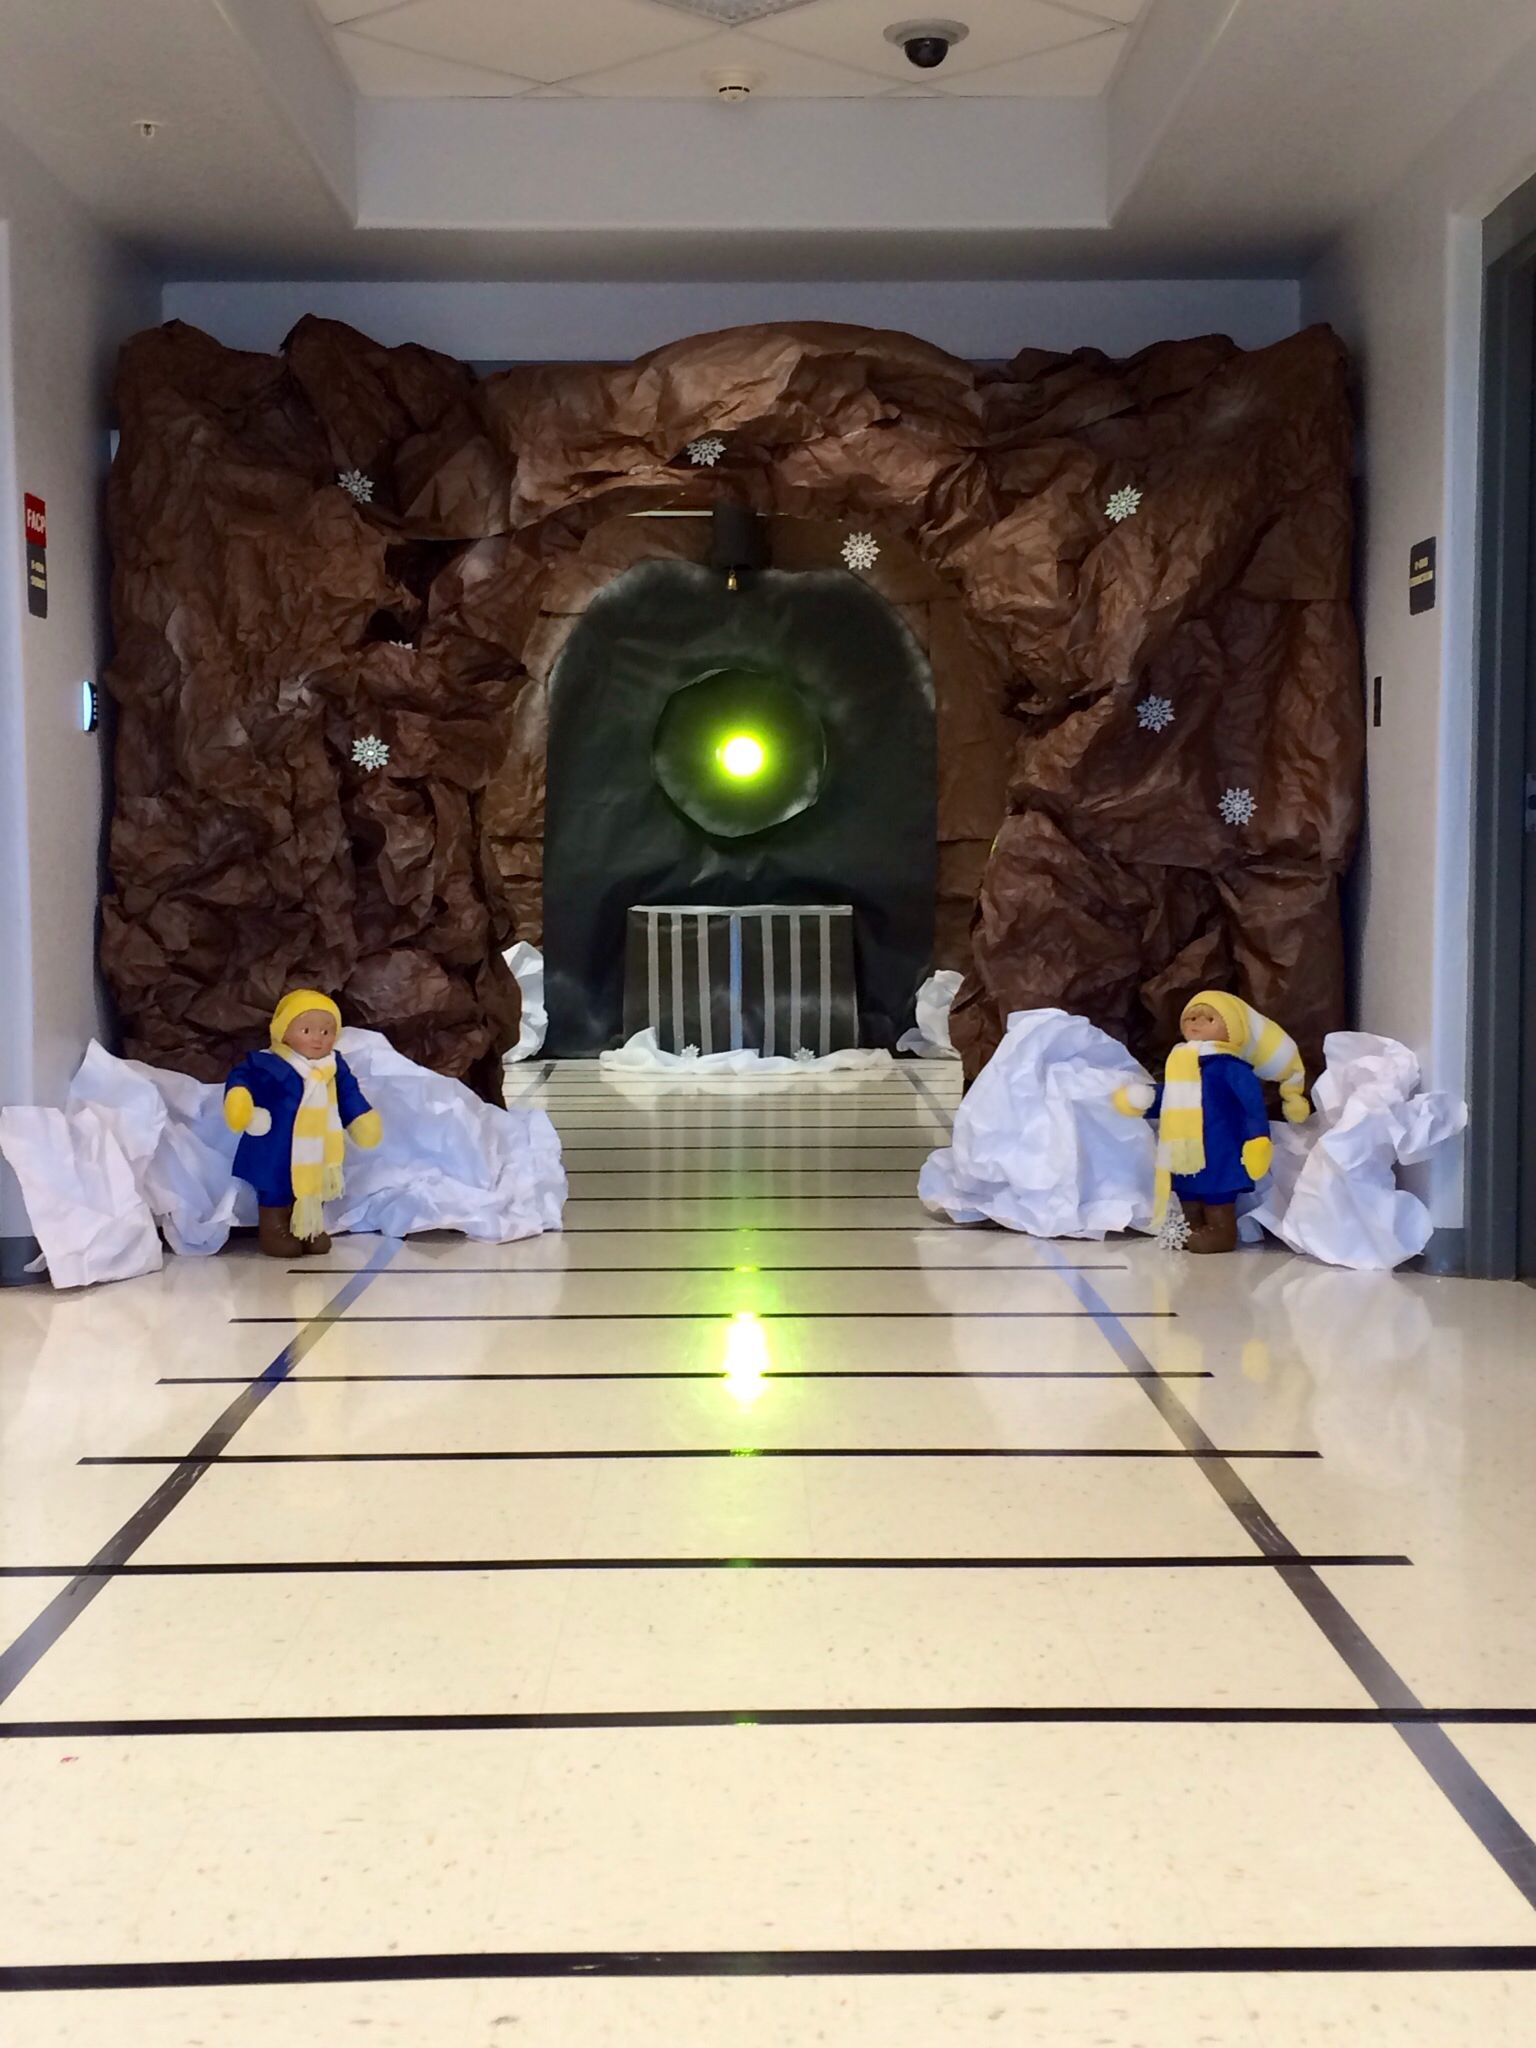 Polar Express Entrance With Images